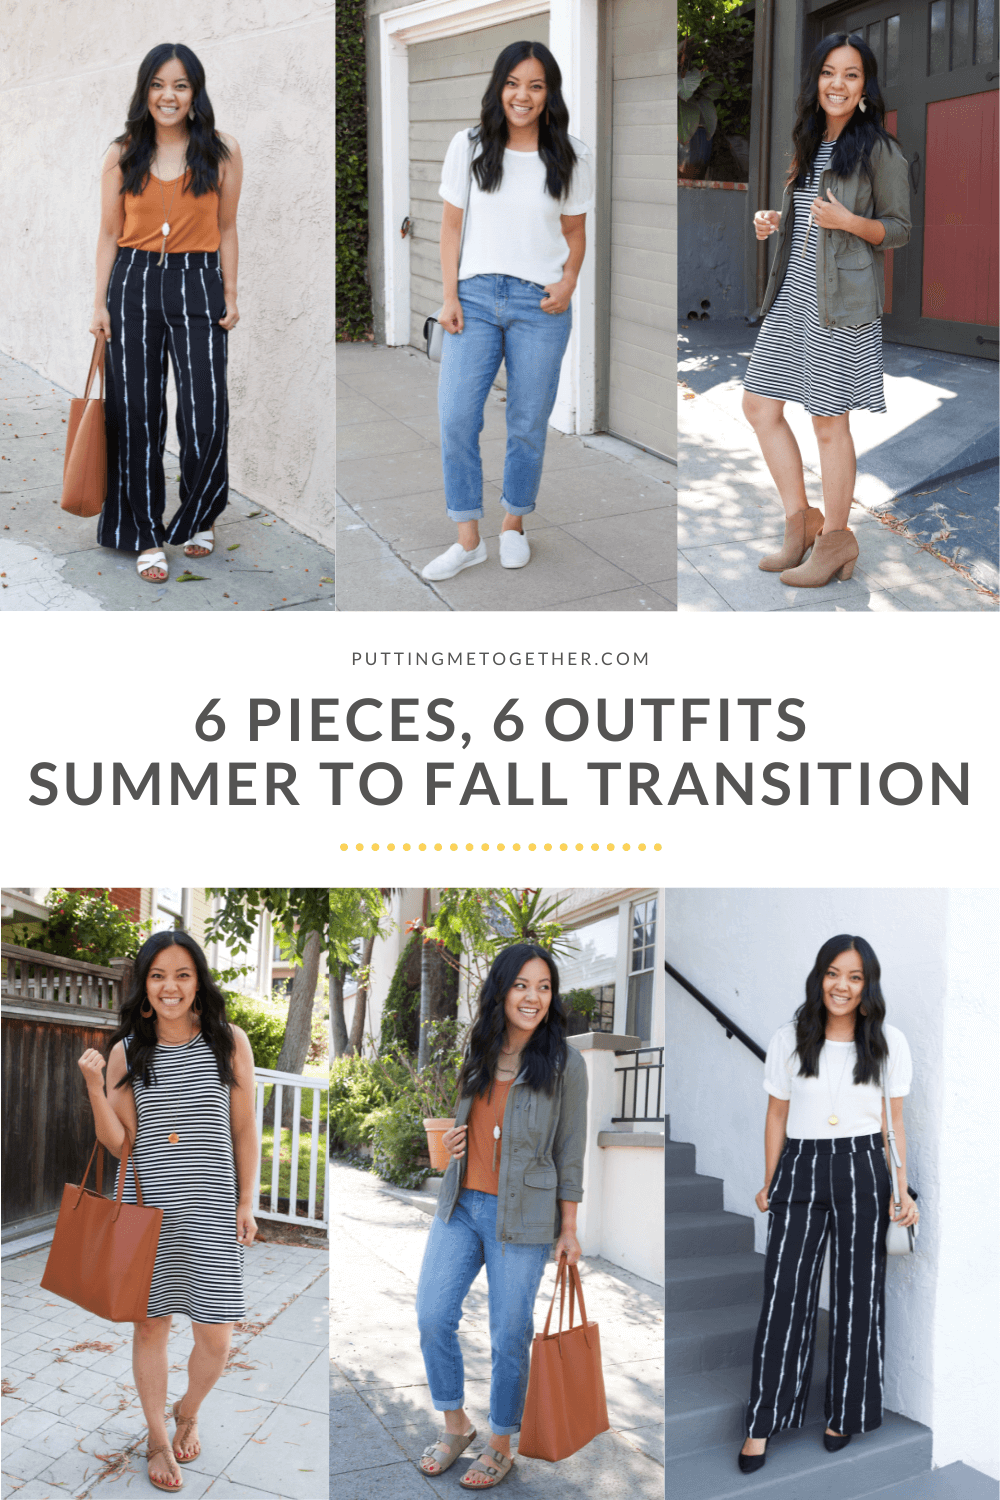 6 Pieces, 6 Outfits Summer to Fall Capsule Wardrobe - Outfits